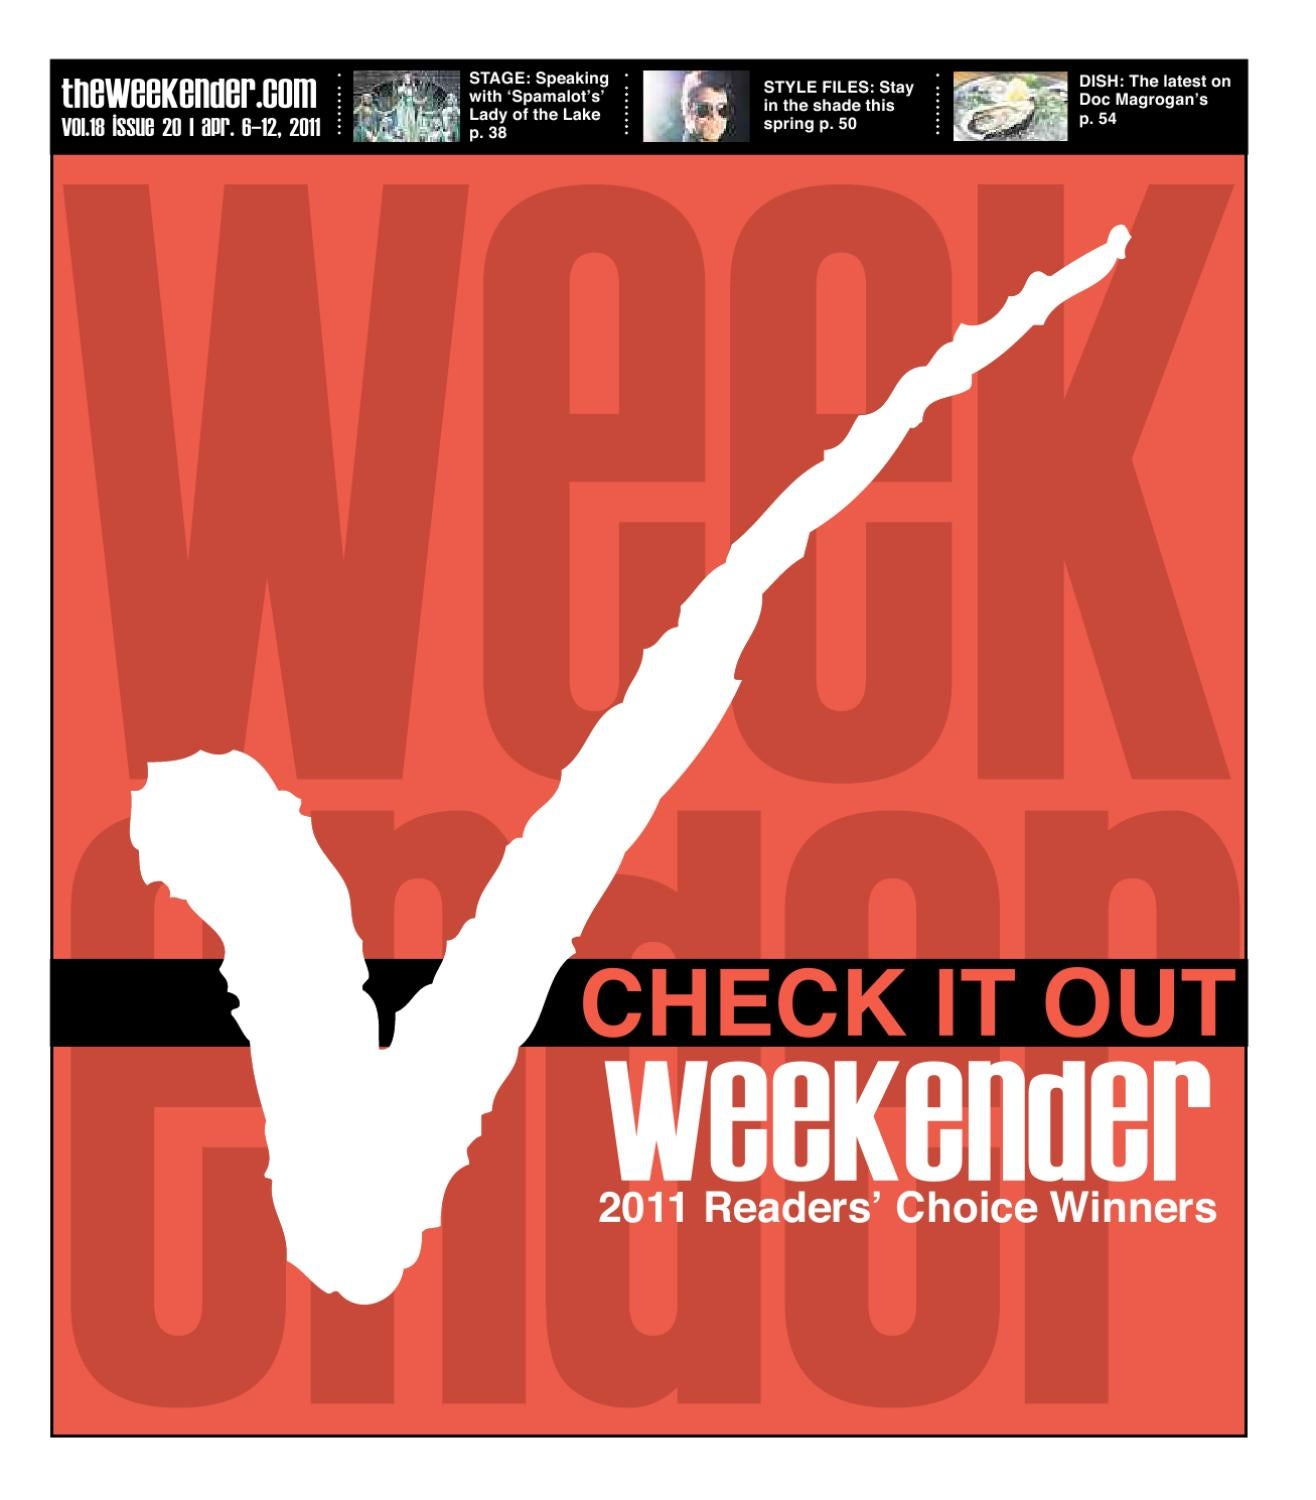 the weekender 04 06 2011 by the wilkes barre publishing pany